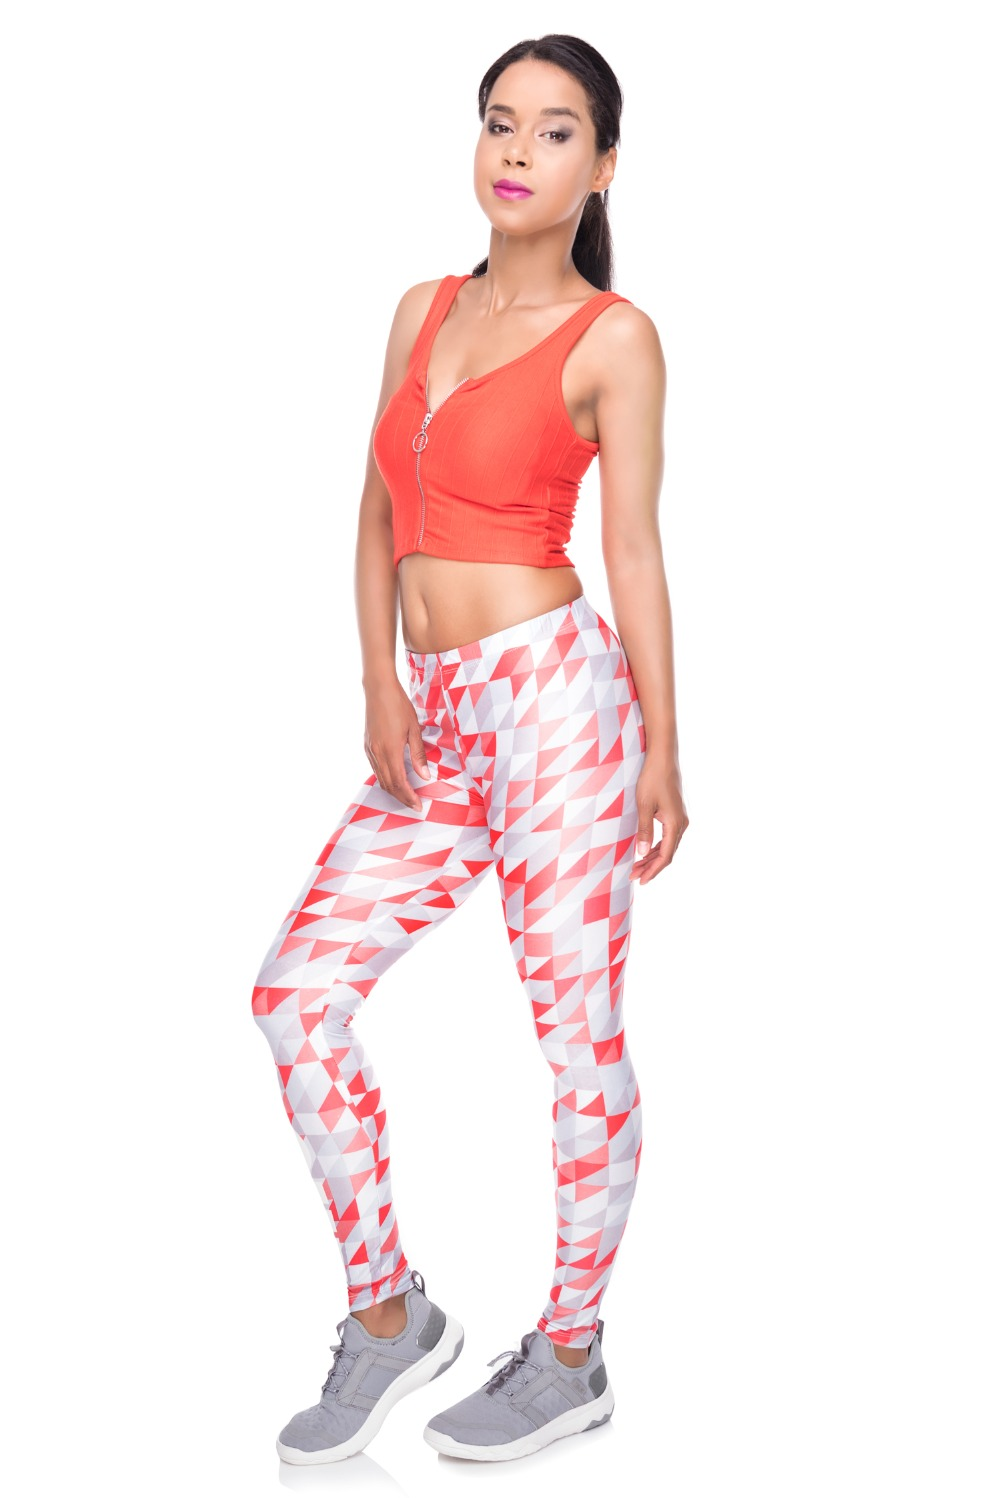 34259 WORK OUT triangle gray red (2)